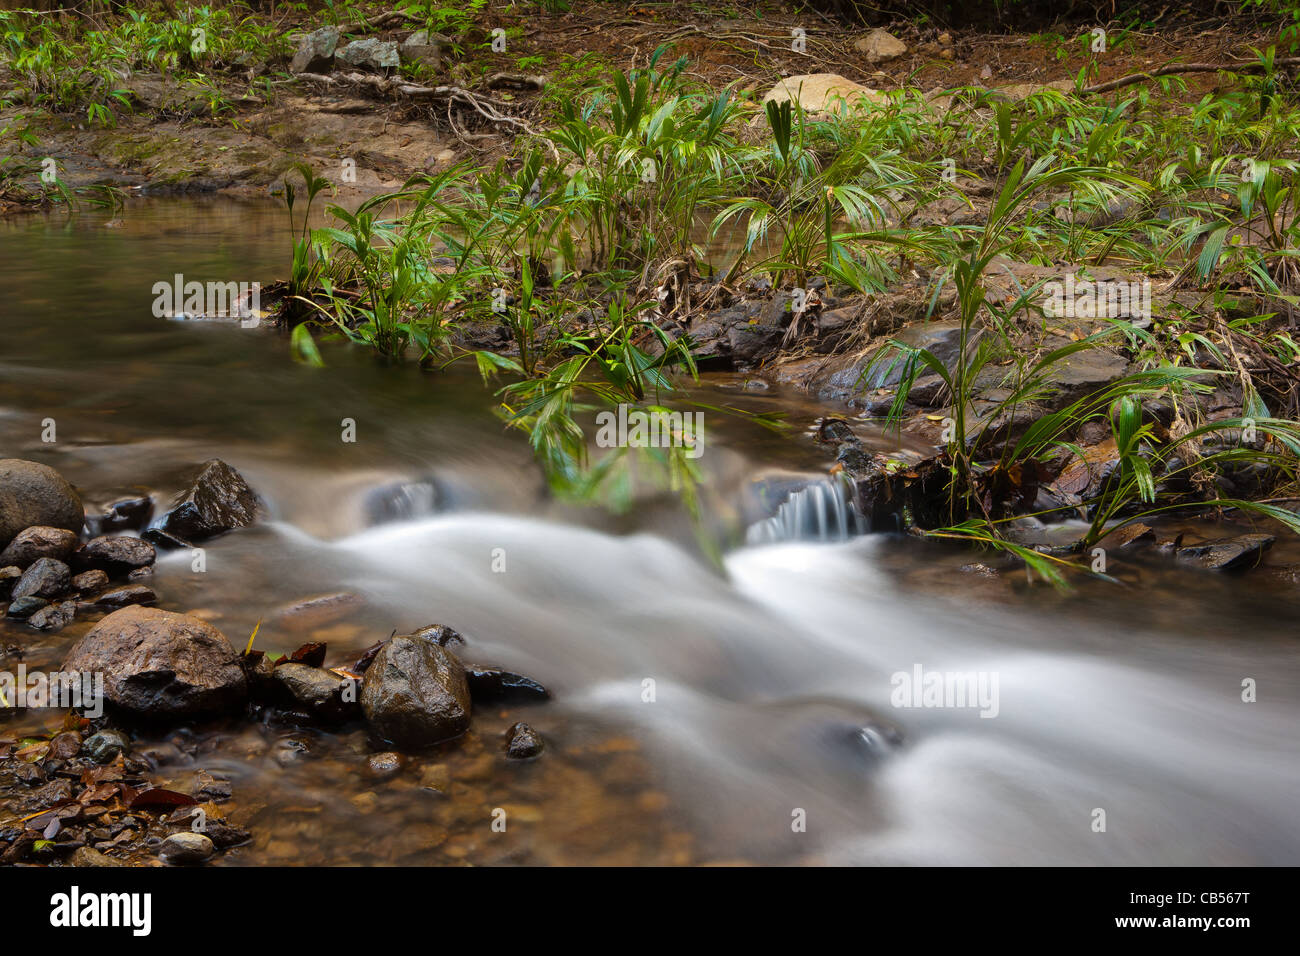 River stream beside the old overgrown Camino Real trail in Portobelo national park, Republic of Panama. - Stock Image